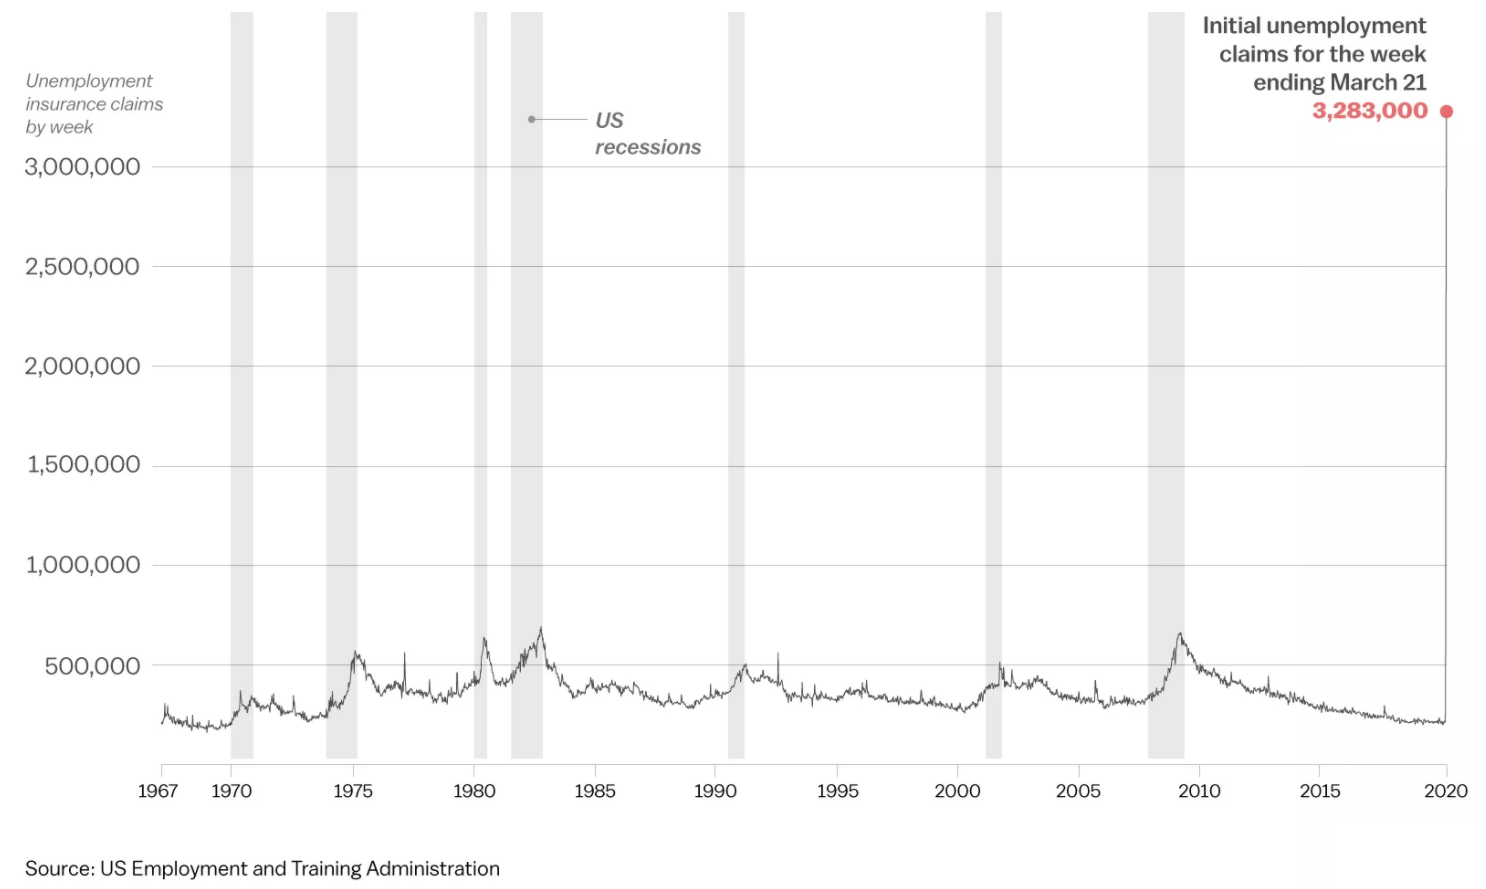 Record unemployment claims during coronavirus global pandemic in the U.S.